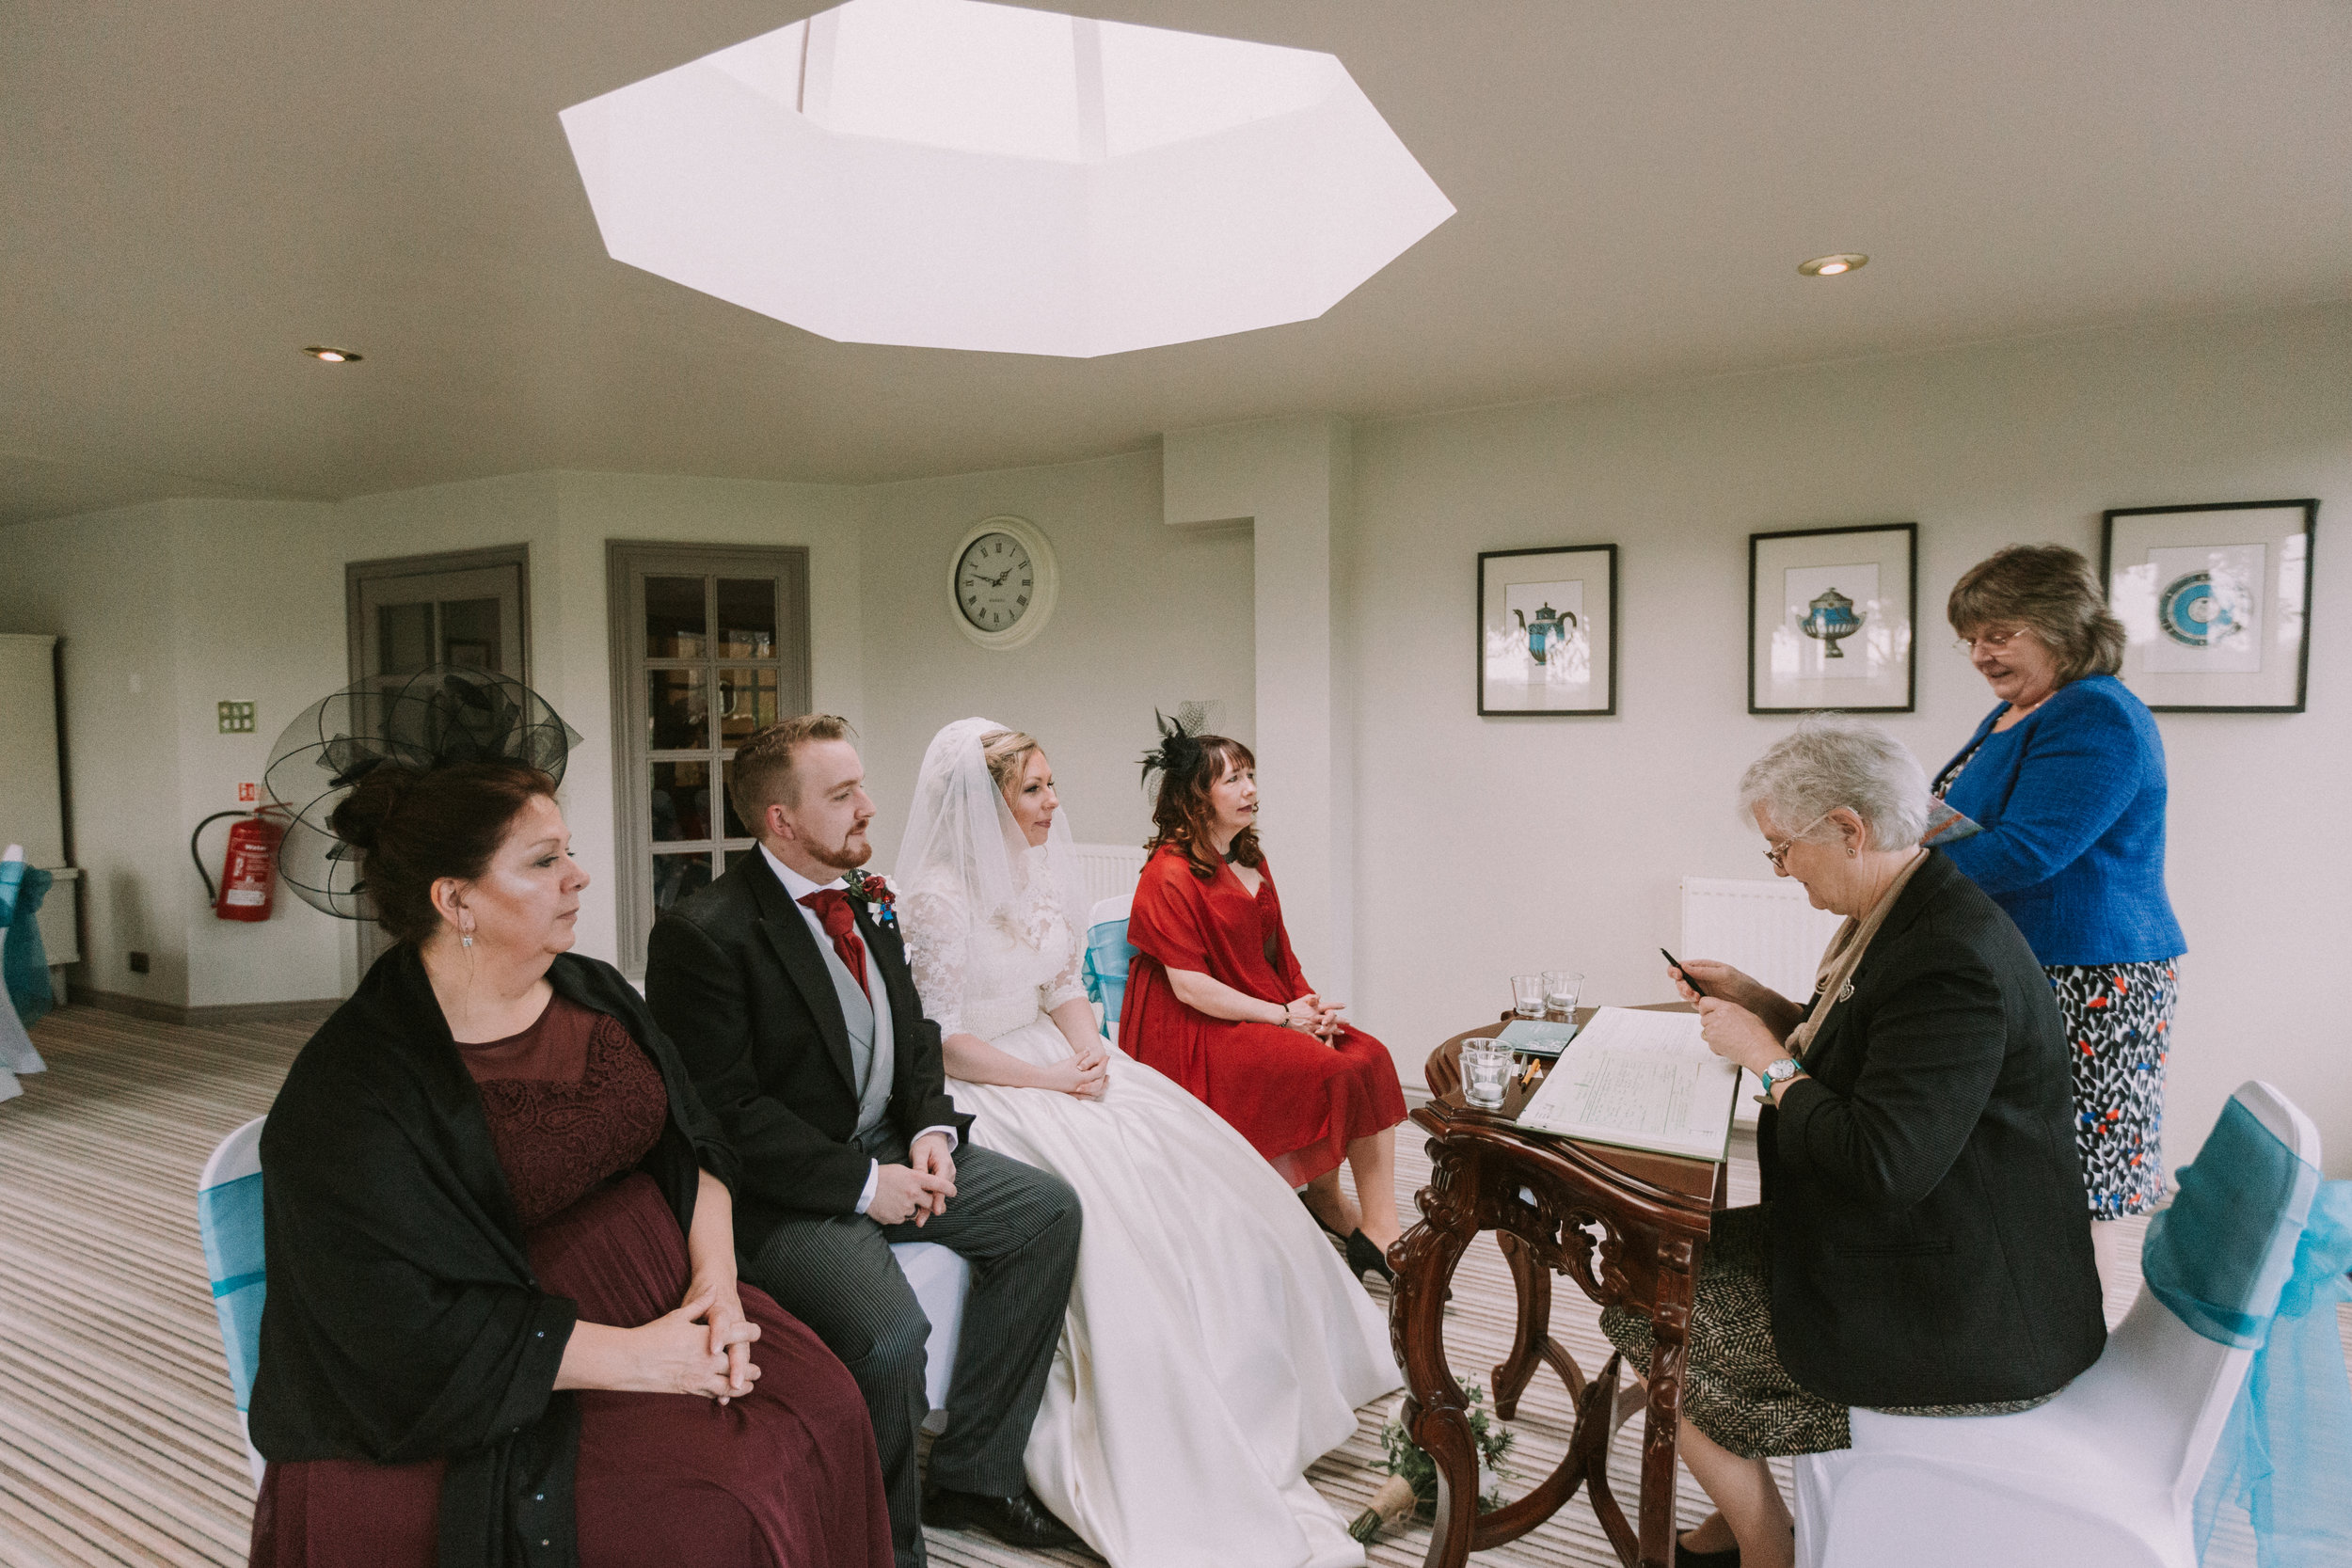 southdowns-manor-wedding-photography-sussex-hampshire-civil-service-conservatory-112